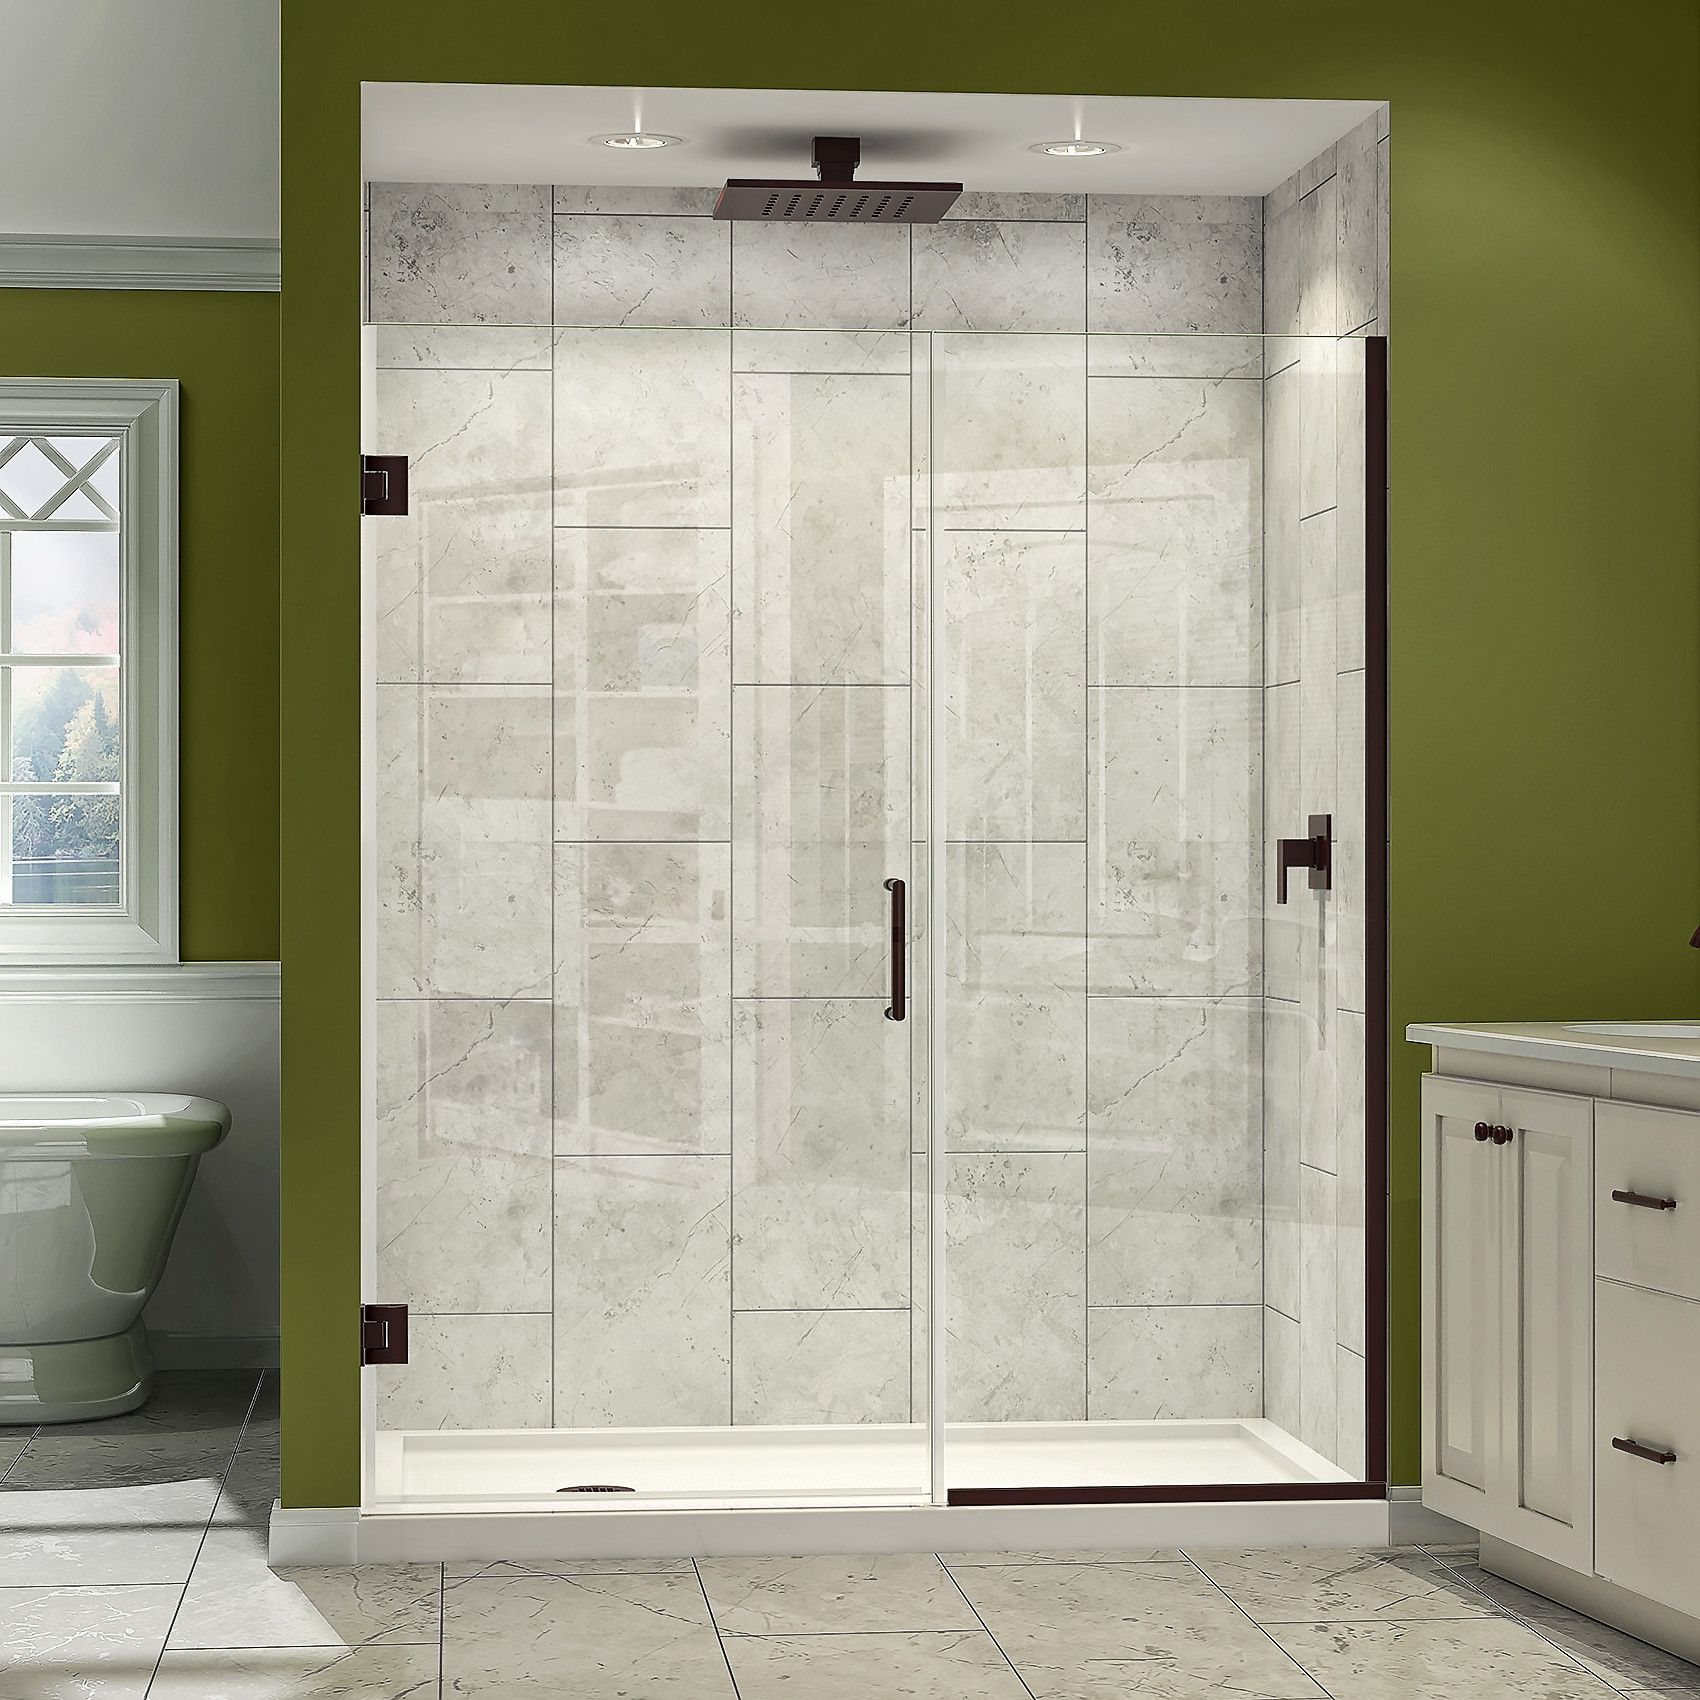 How To Break Into A Bathroom Door: We Only Have A Rain Shower Head (kind Of Like This One